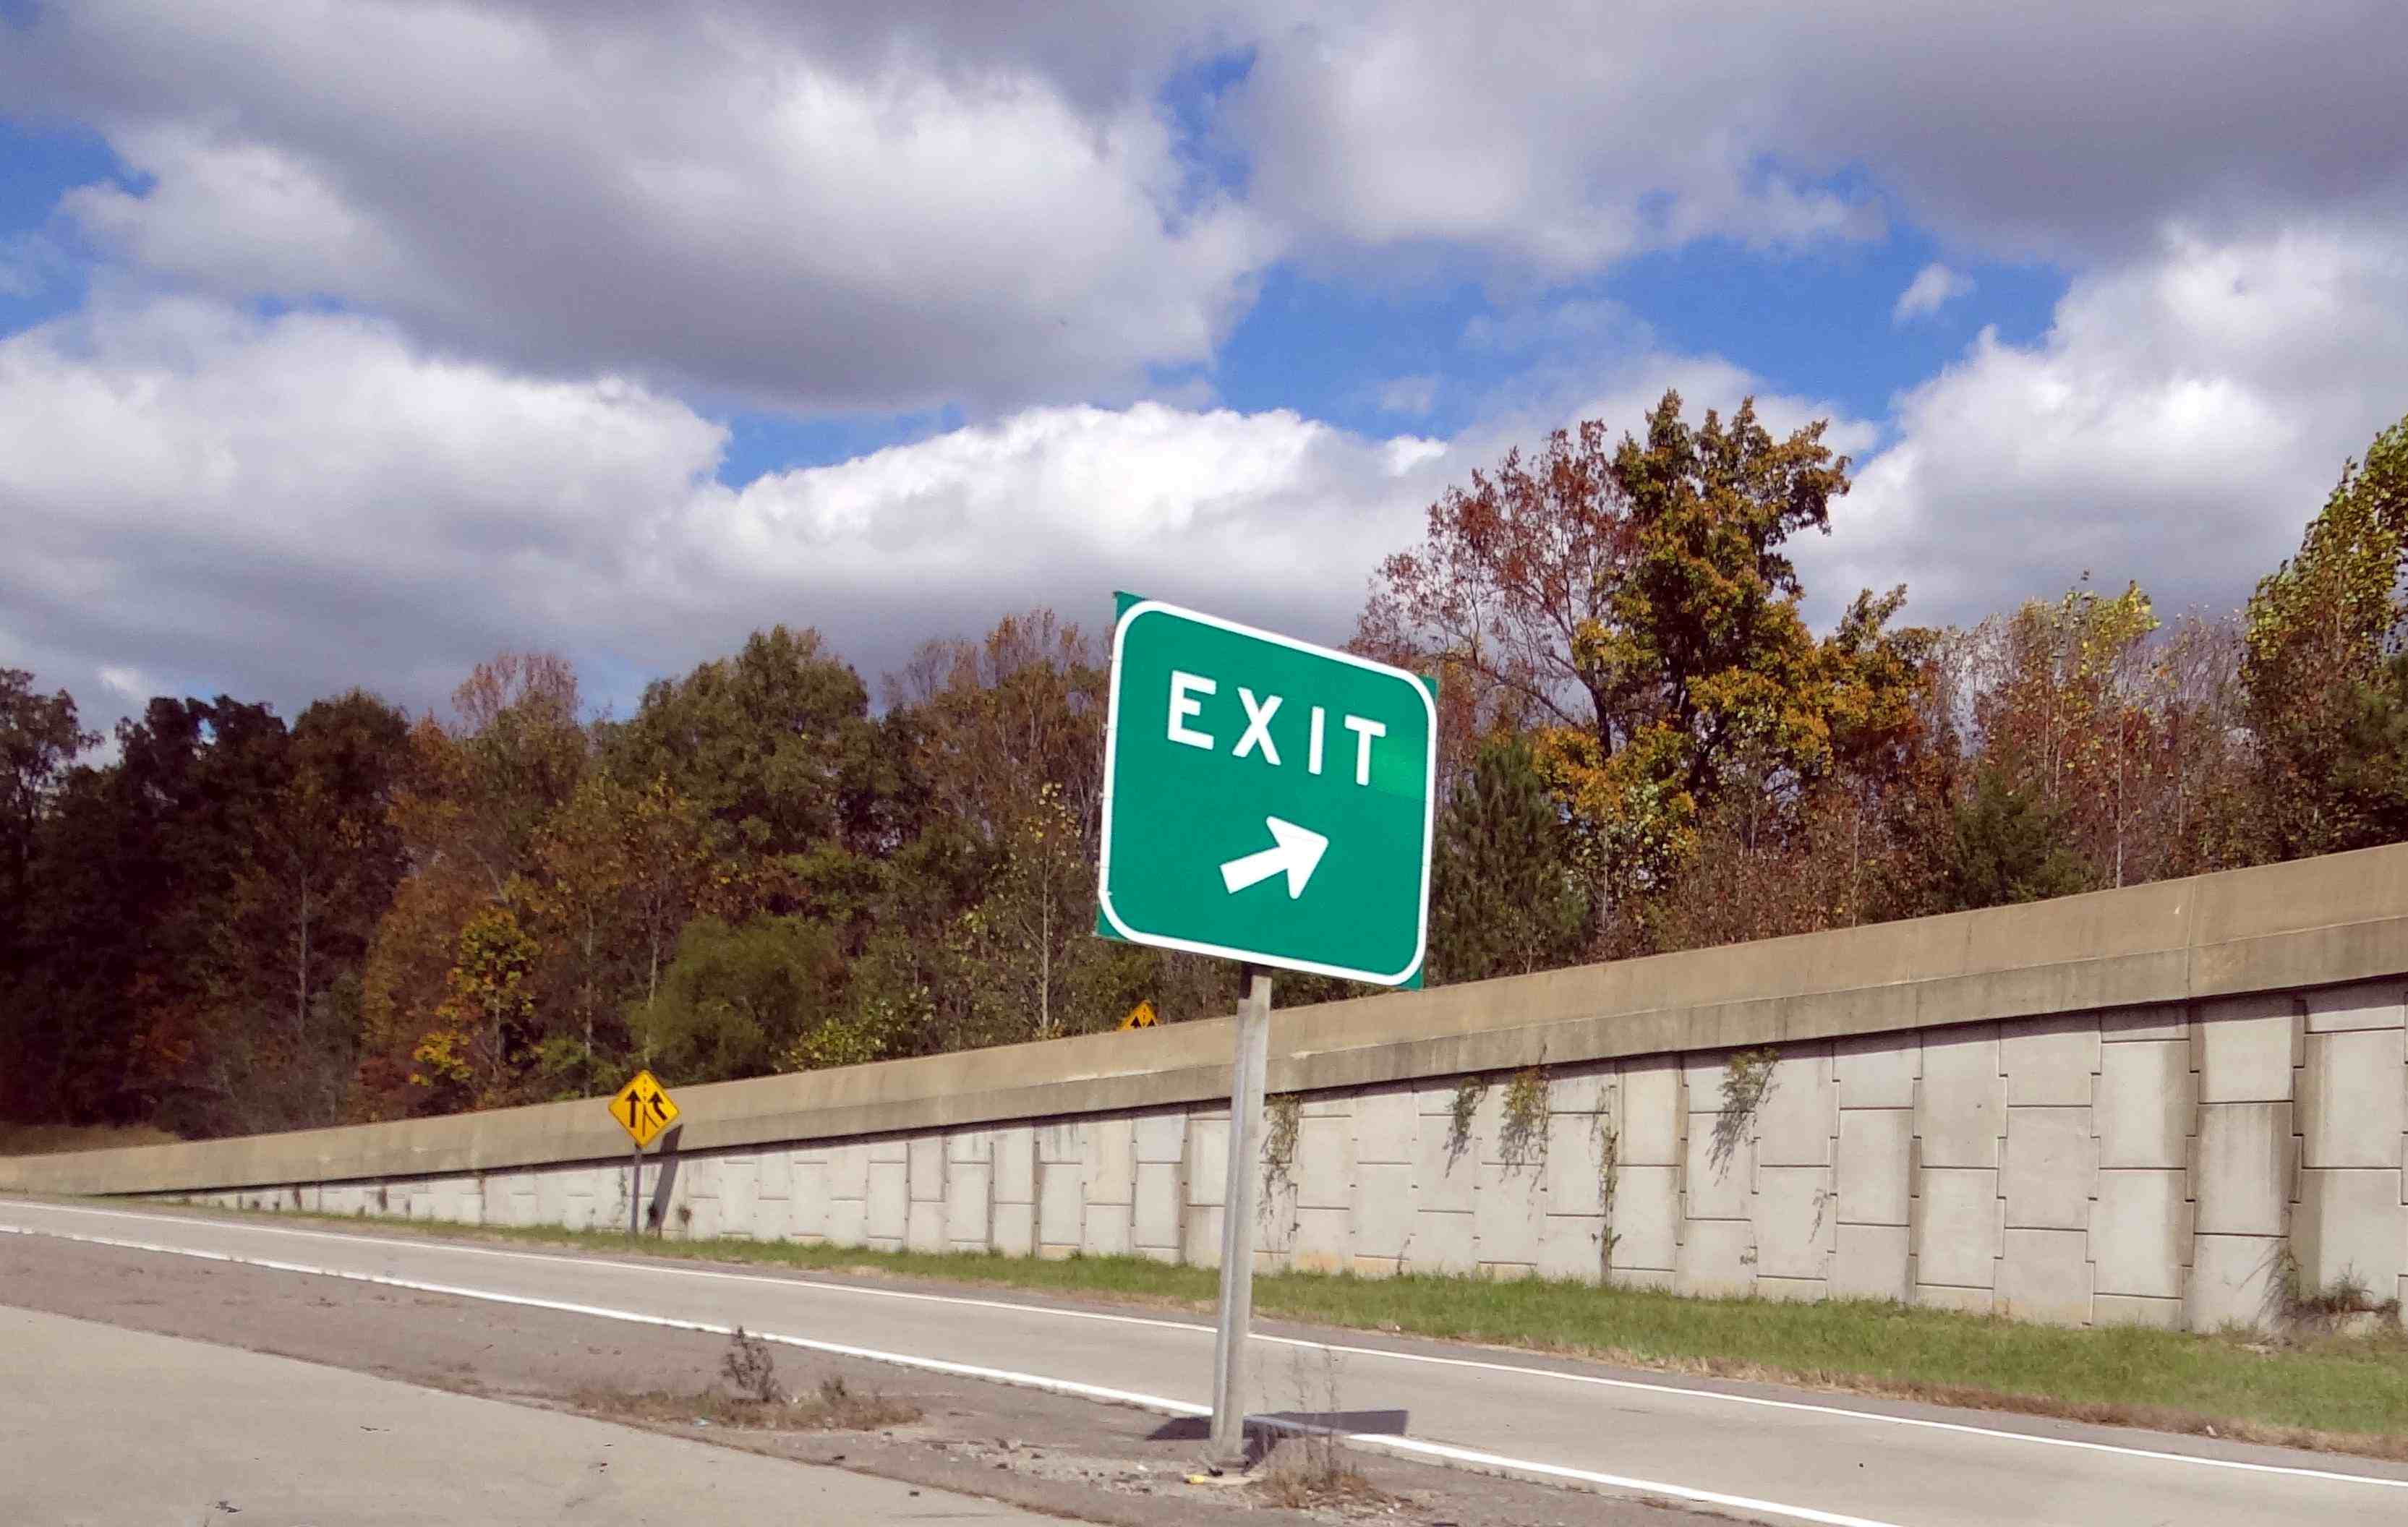 exit ramp traffic diagram human liver auto accident lawyer david perecman strongly recommends